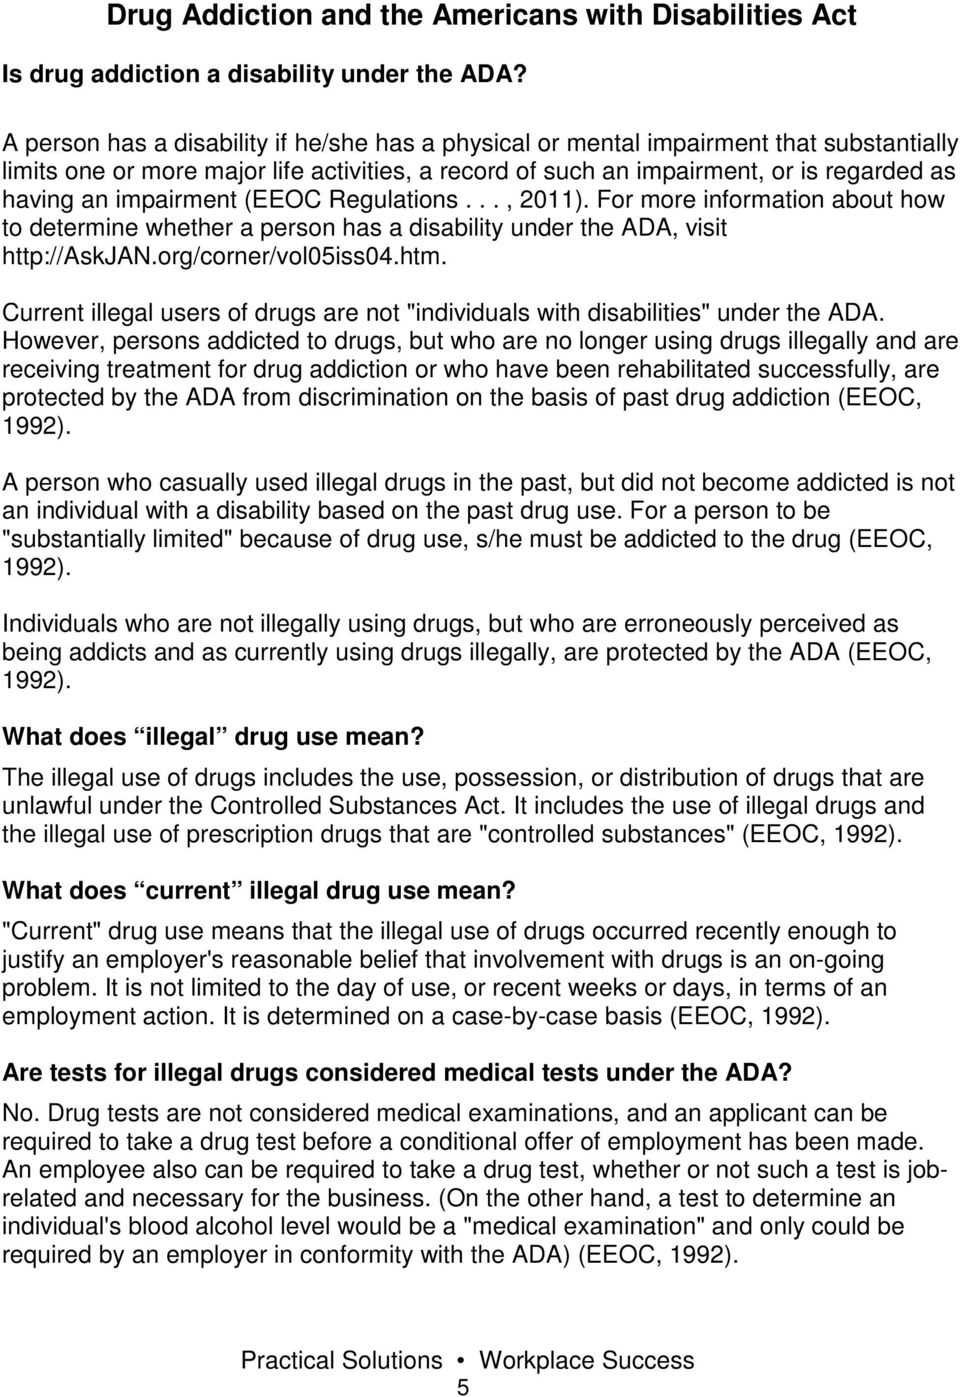 impairment (EEOC Regulations..., 2011). For more information about how to determine whether a person has a disability under the ADA, visit http://askjan.org/corner/vol05iss04.htm.